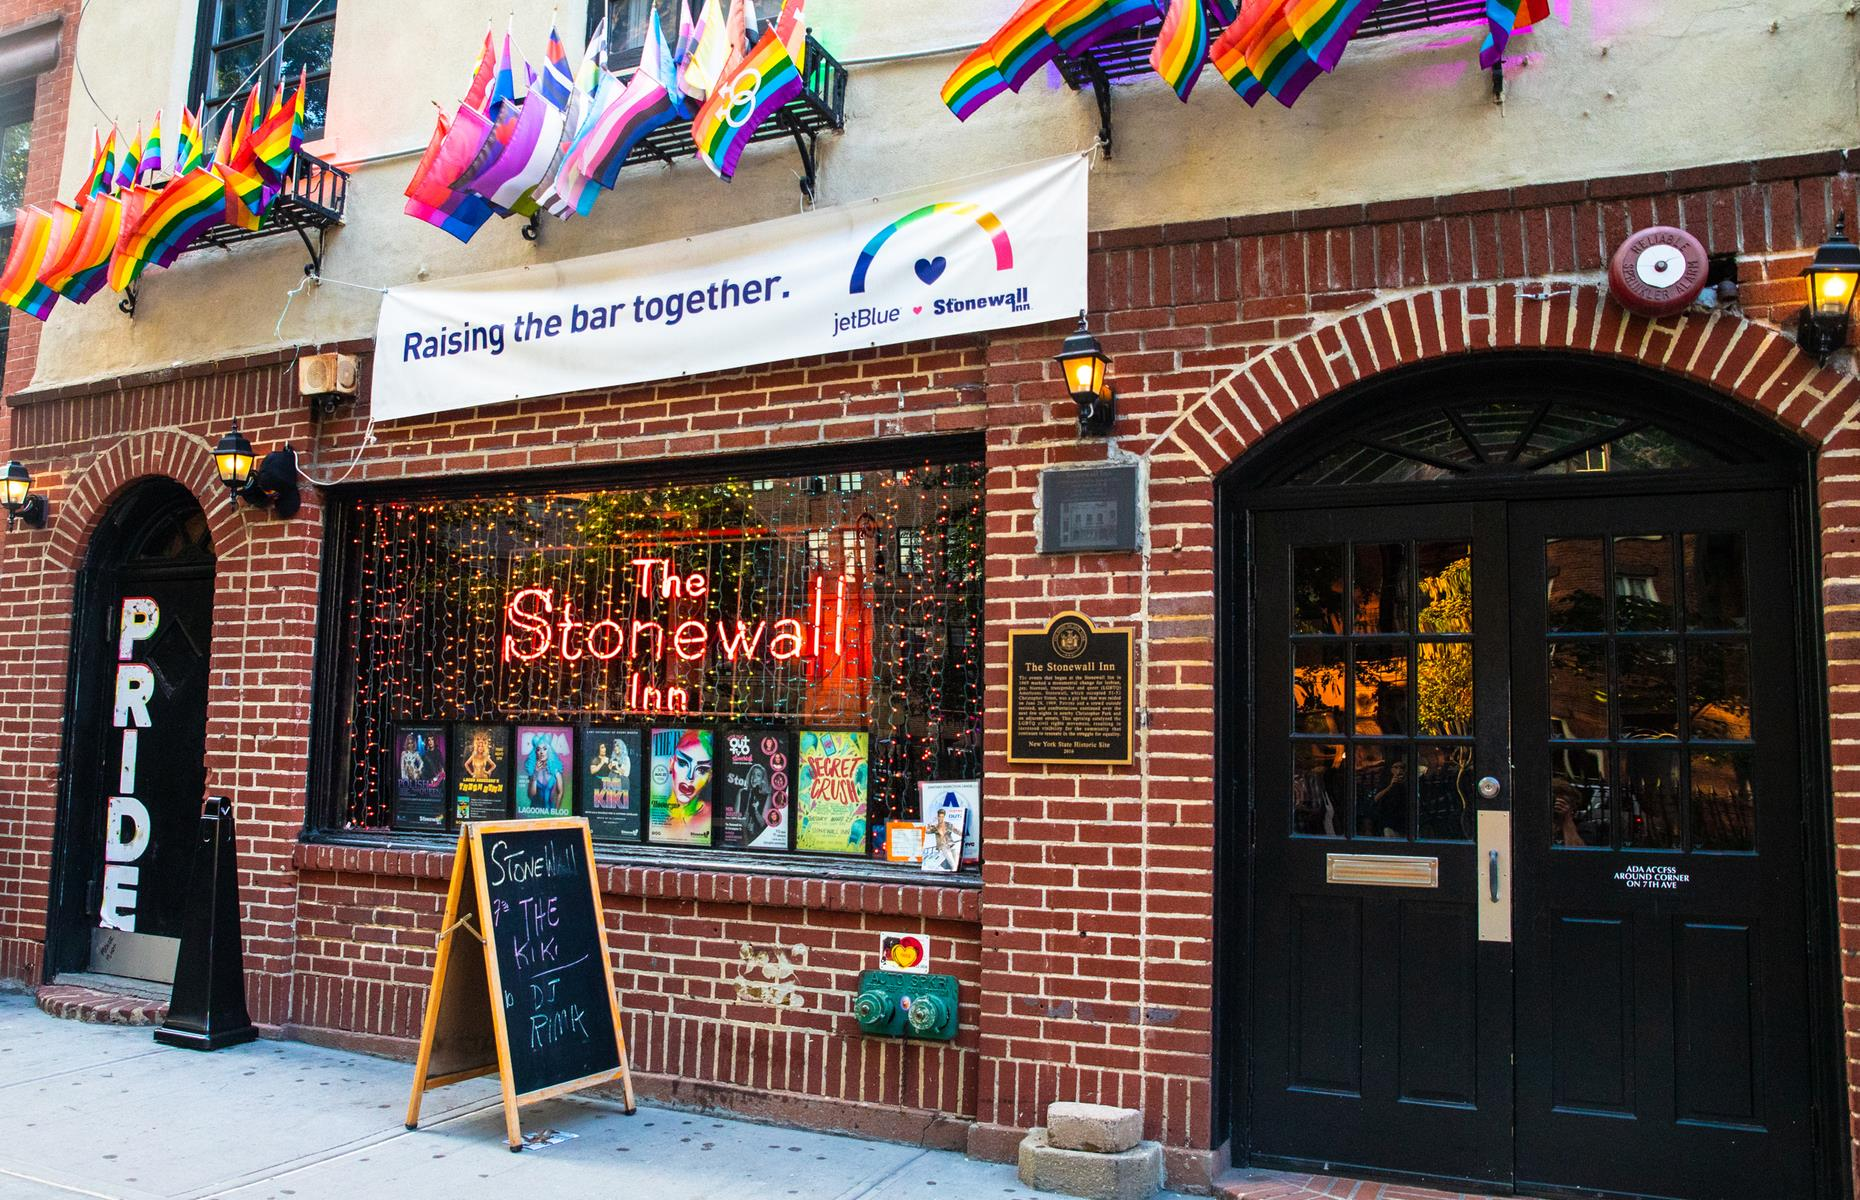 Slide 22 of 31: In America, it's impossible to talk about the history of the LGBTQ struggle for rights without mentioning theStonewall Inn in Greenwich Village. After starting its life as a nightclub for straight people, Stonewall was revamped into a gay bar back in 1966. It was here, 50years ago, that the first Gay Pride took place a year.The Stonewall Inn is credited with sparking the gay rights movement across the United States and beyond, and still operatesas a bar today.